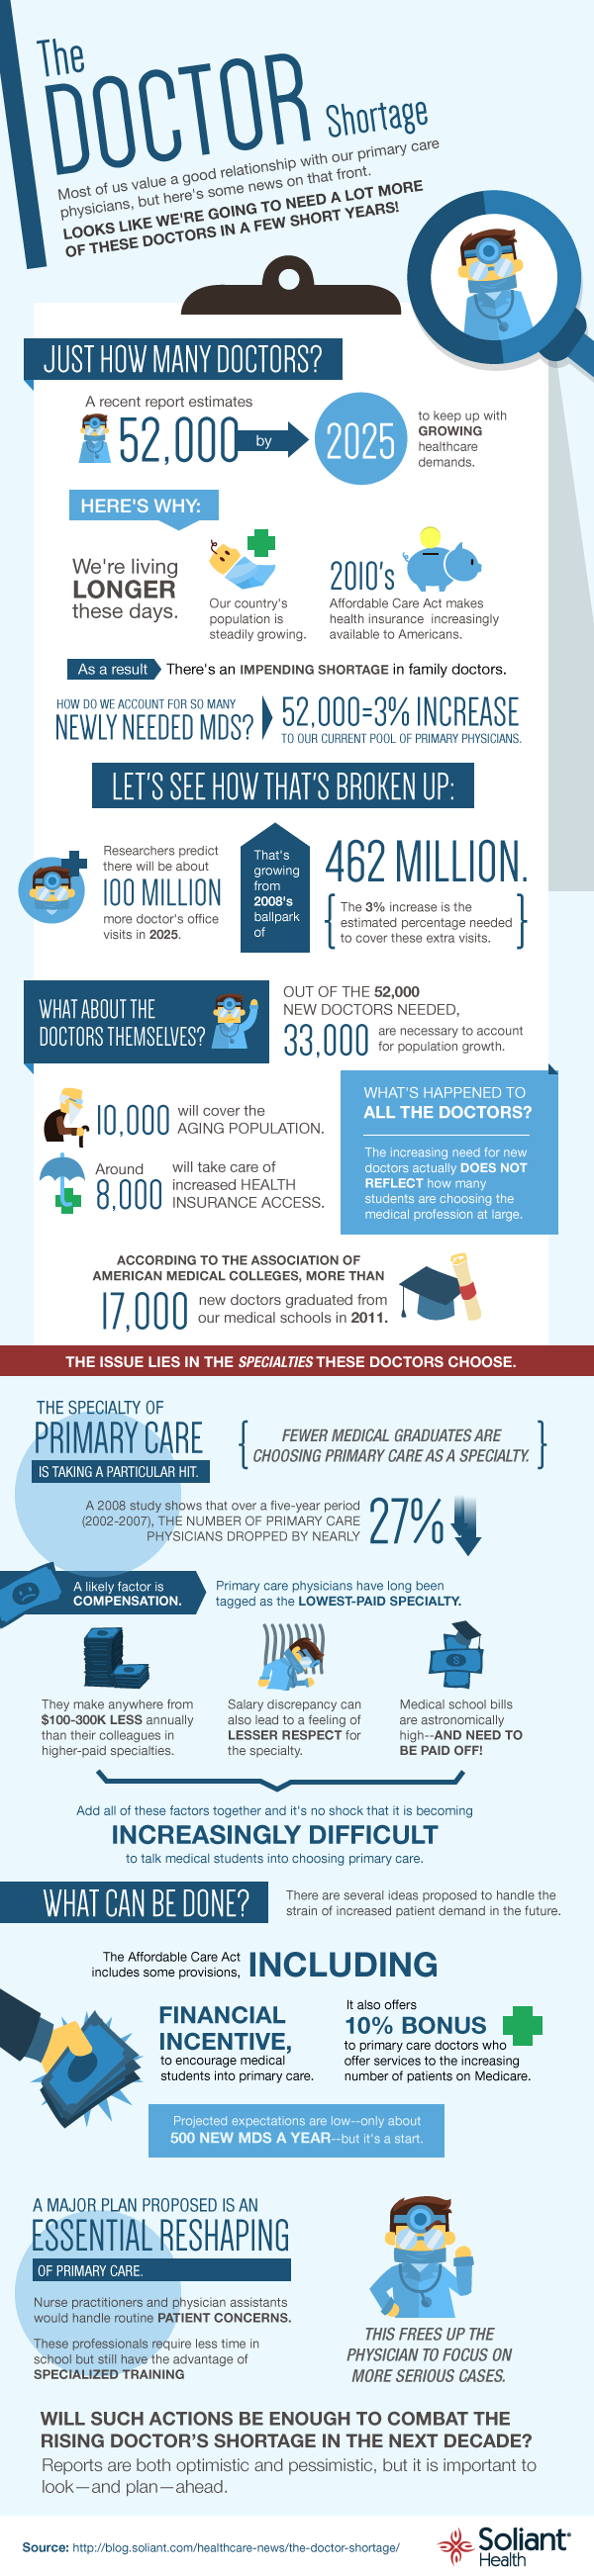 The Doctor Shortage – Where Are All the Doctors?